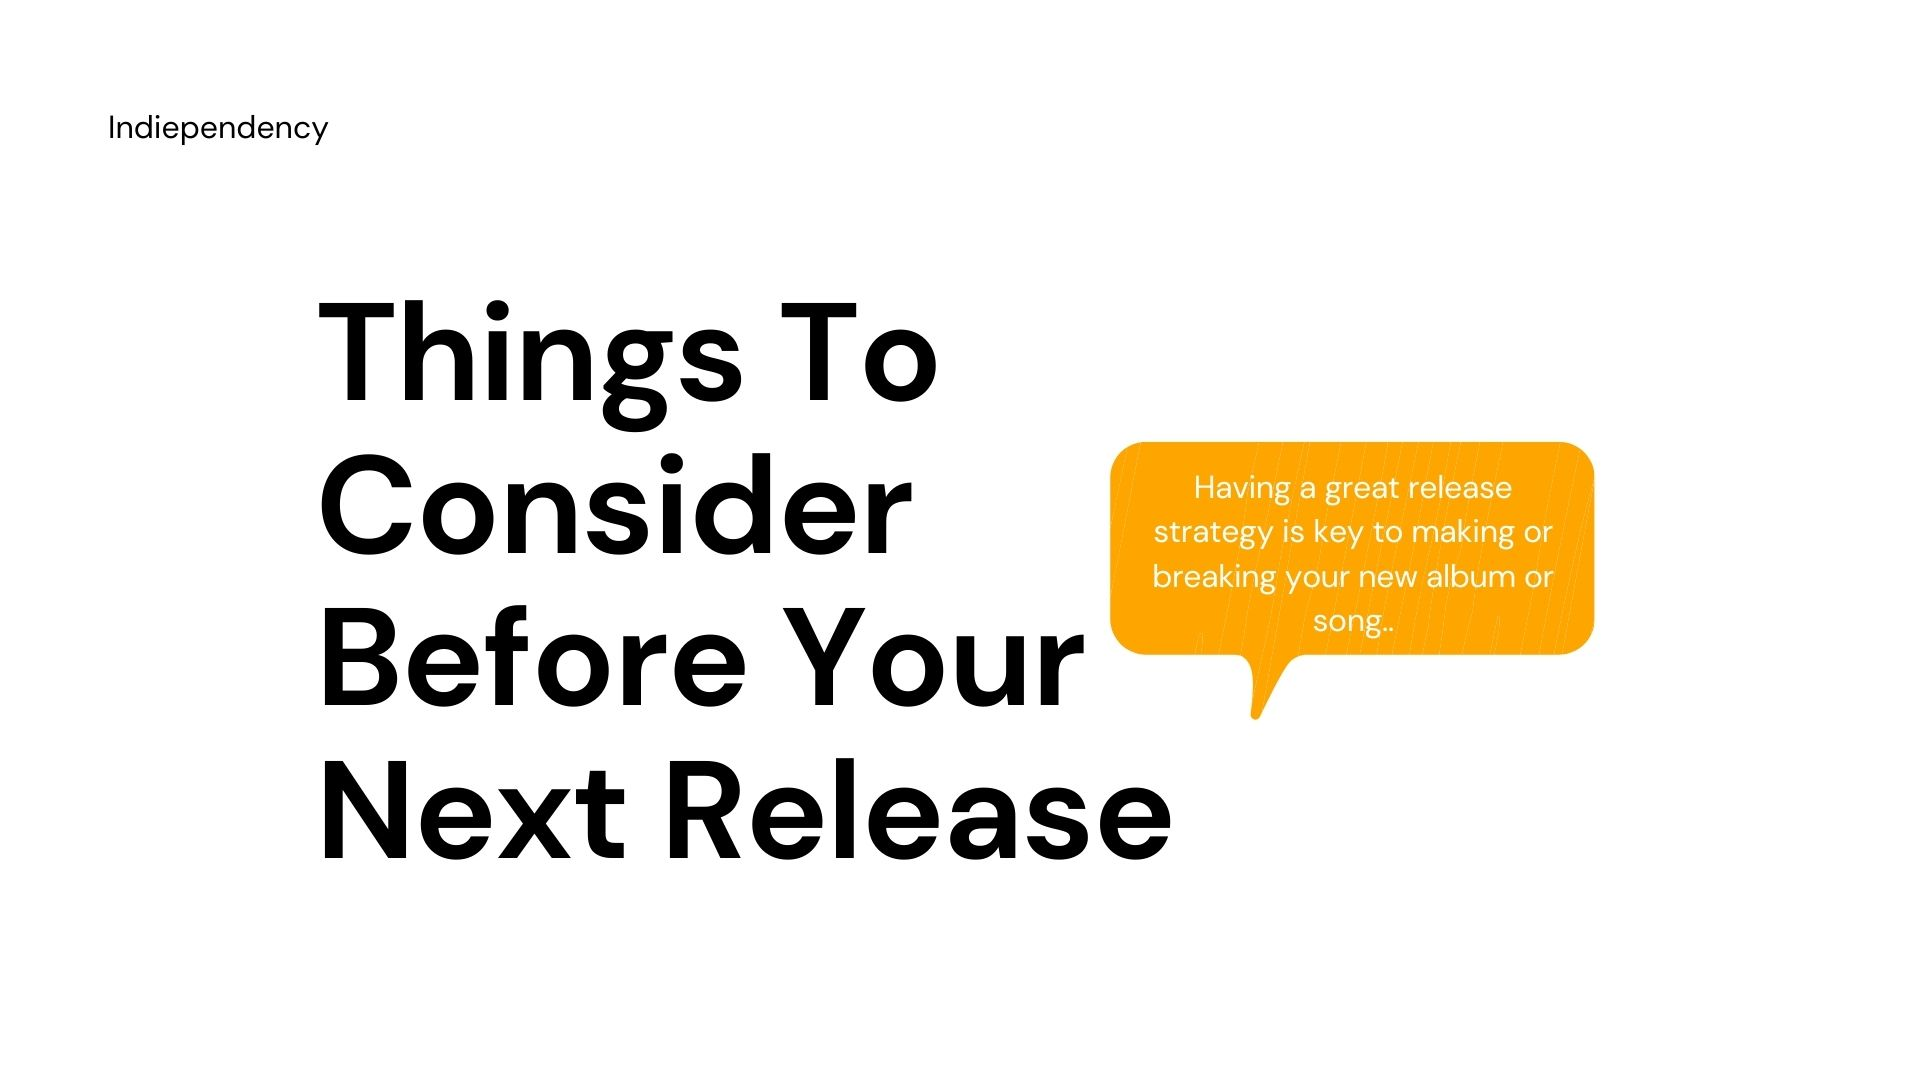 Things To Consider Before Your Next Release